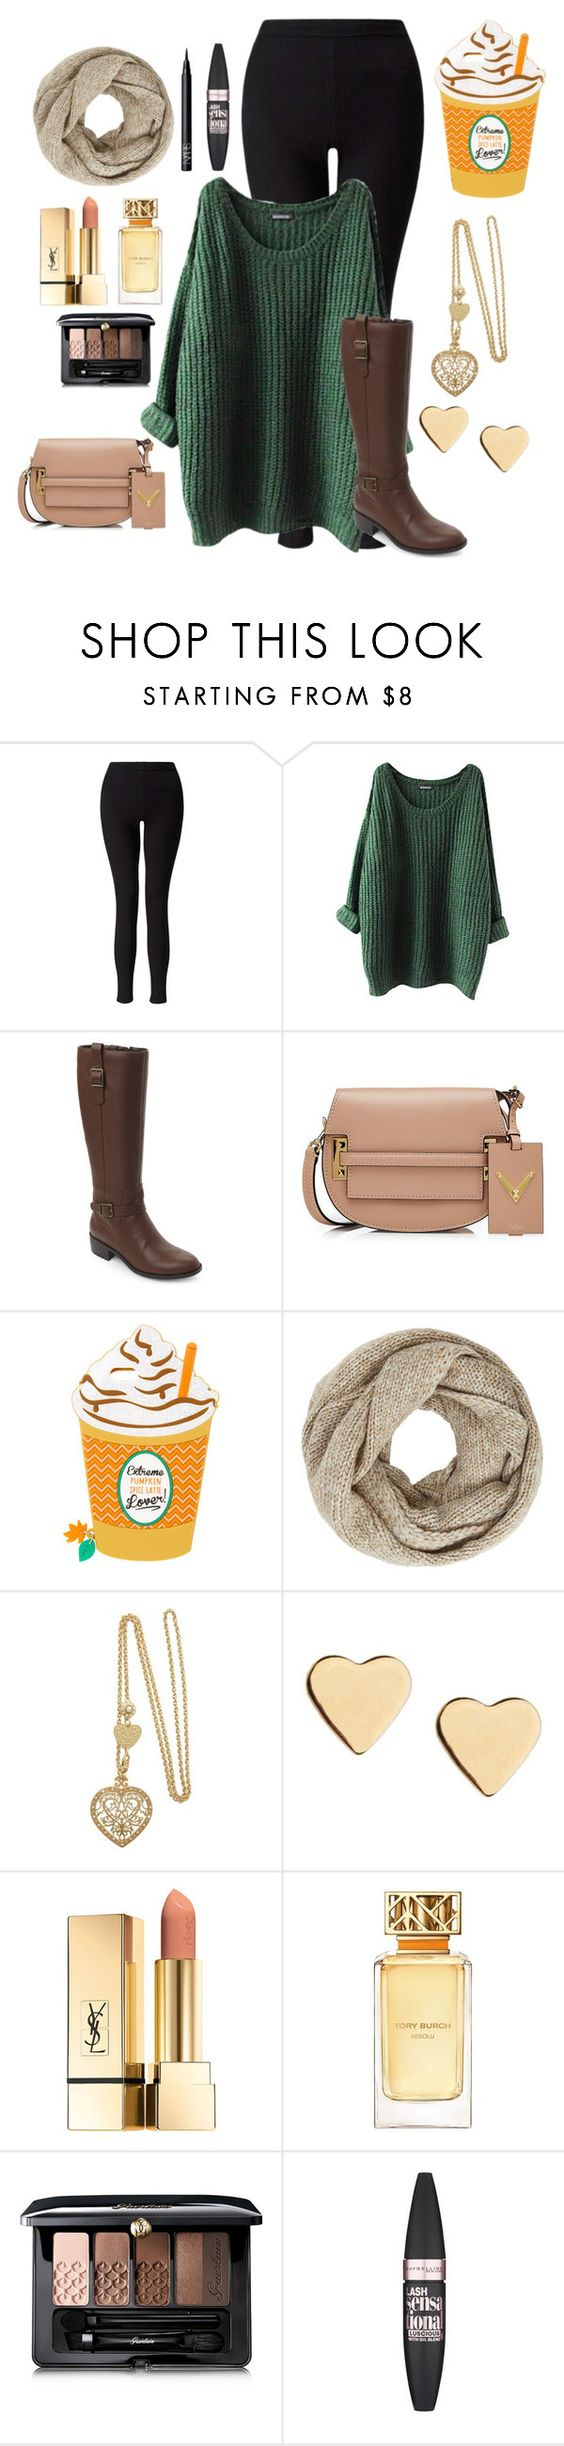 """""""Ready for fall"""" by jazz-dazzle ❤ liked on Polyvore featuring Miss Selfridge, Cole Haan, Valentino, John Lewis, Lipsy, Tory Burch, Guerlain, Maybelline and NARS Cosmetics"""